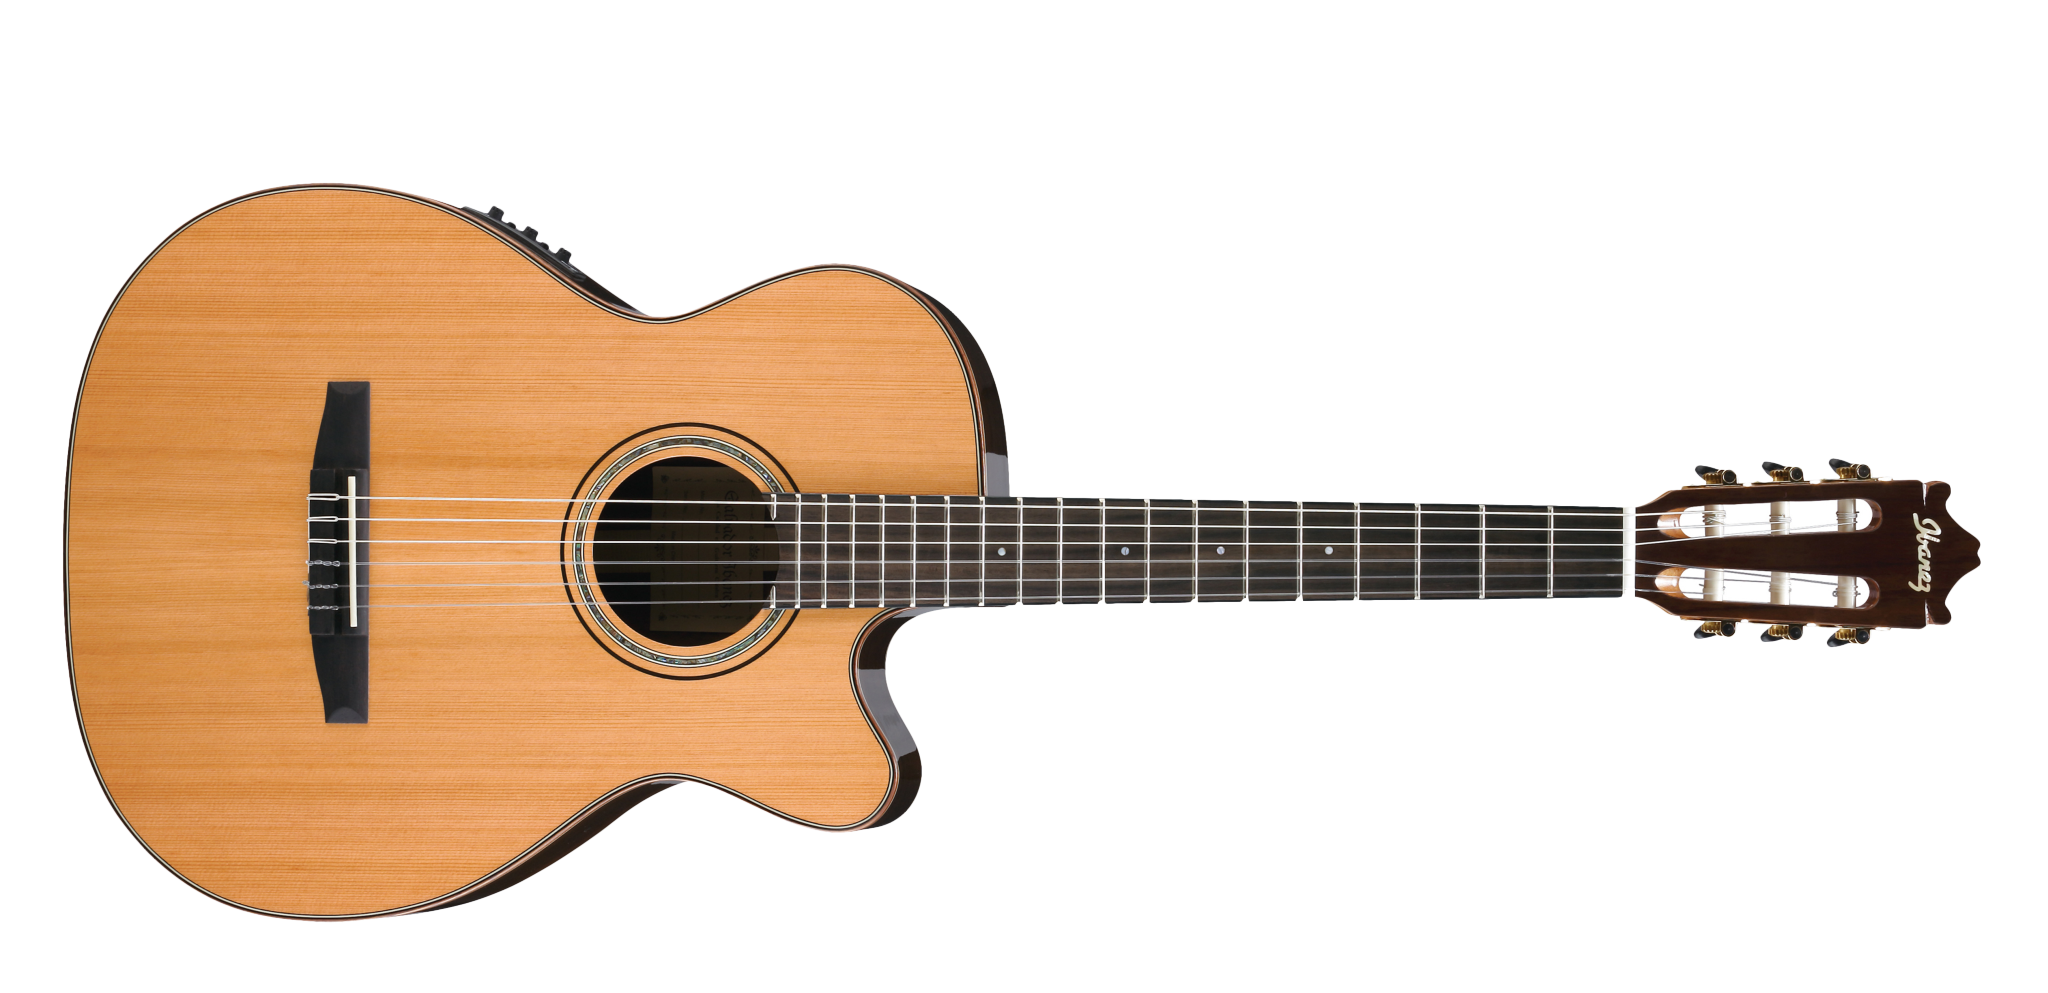 Country guitar png. Transparent images pluspng image